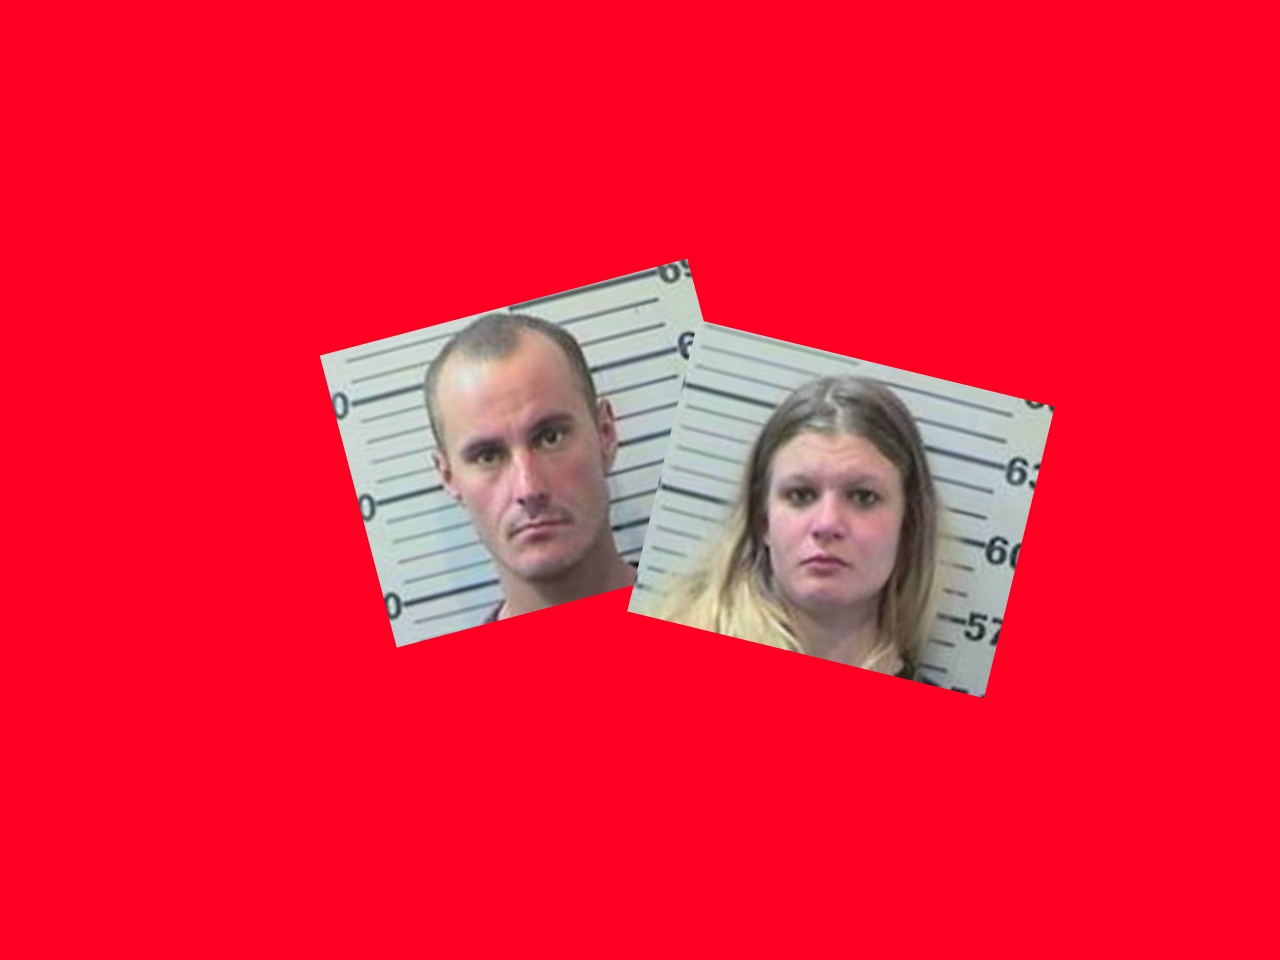 (image: WPMI) Cousins Adam Kidd &amp;amp; Courtney Barnett wanted by Mobile County Sheriffs for car theft<p></p>